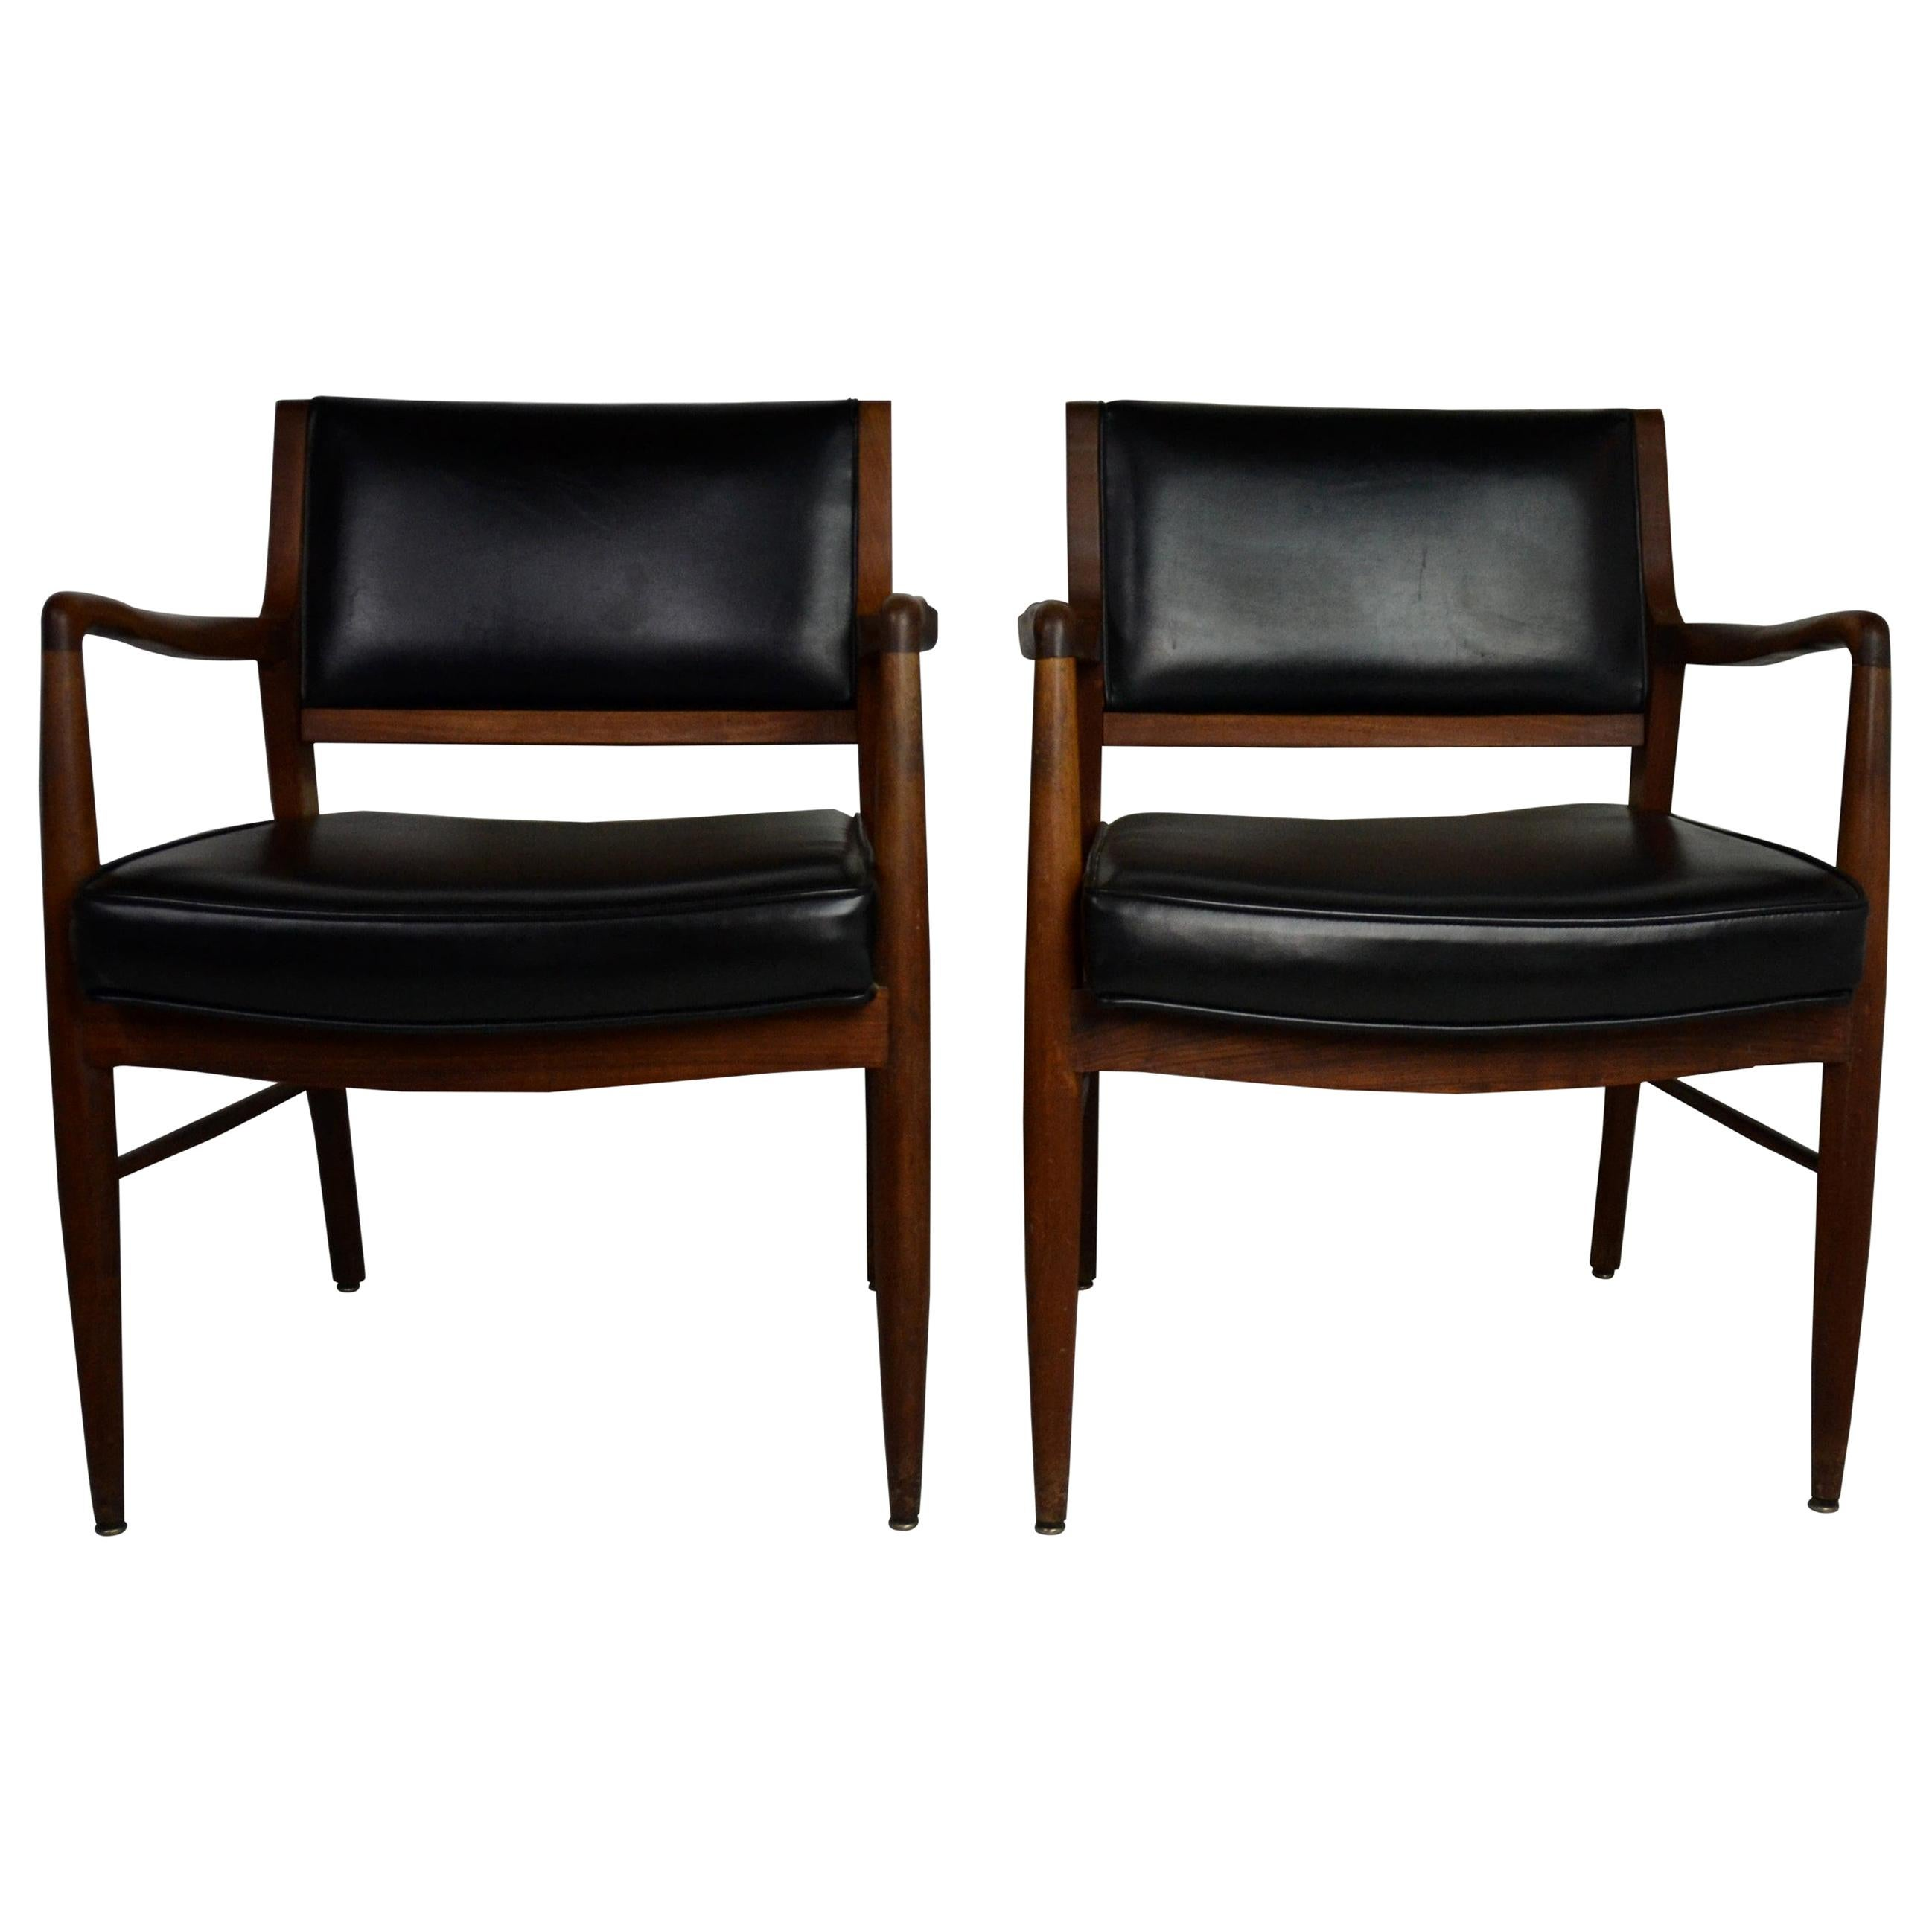 Midcentury Armchair Faux-Black Leather Seat Covers Set of 2